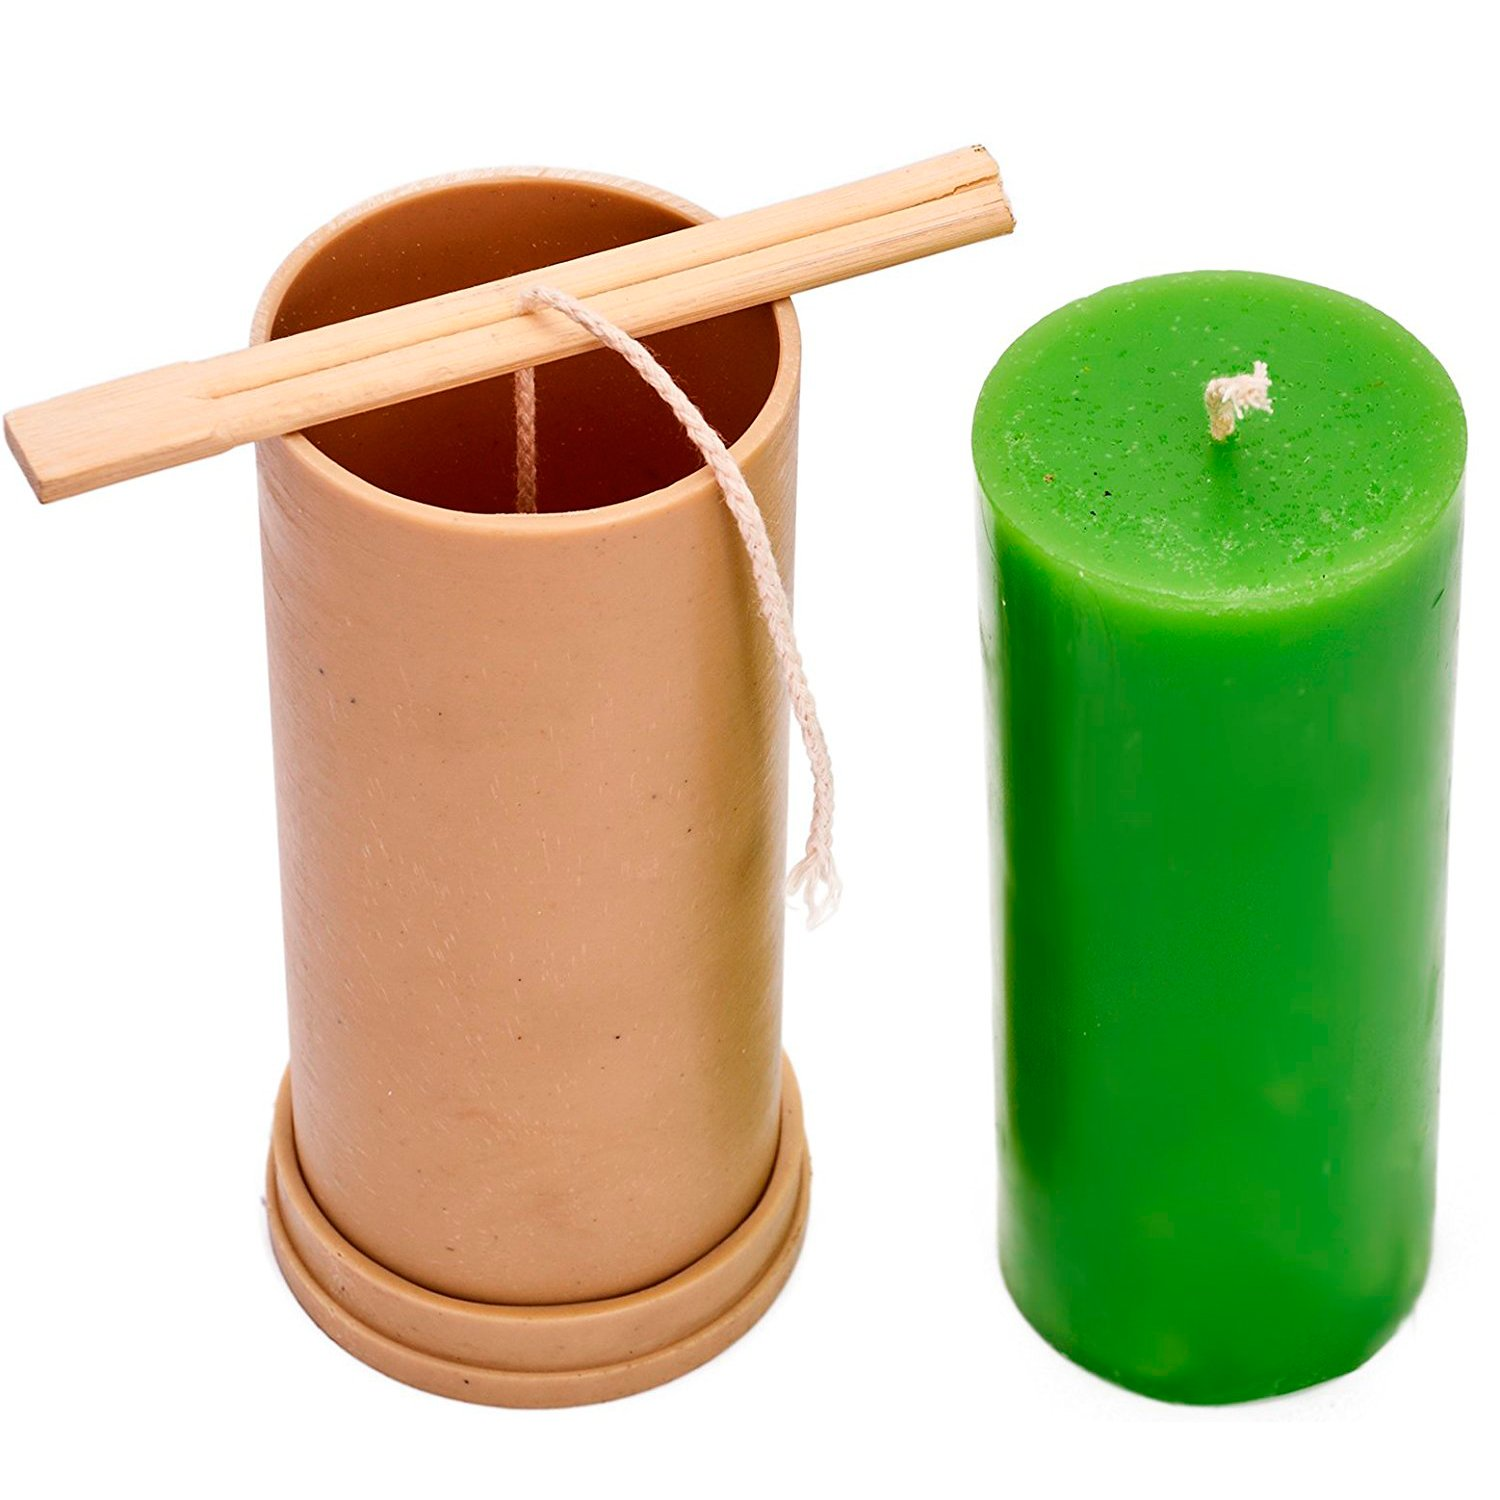 Candle Shop - Сylinder mold - height: 5.9 in, width: 2.3 in - 30 ft. of wick included as a gift - Plastic candle molds for making candles